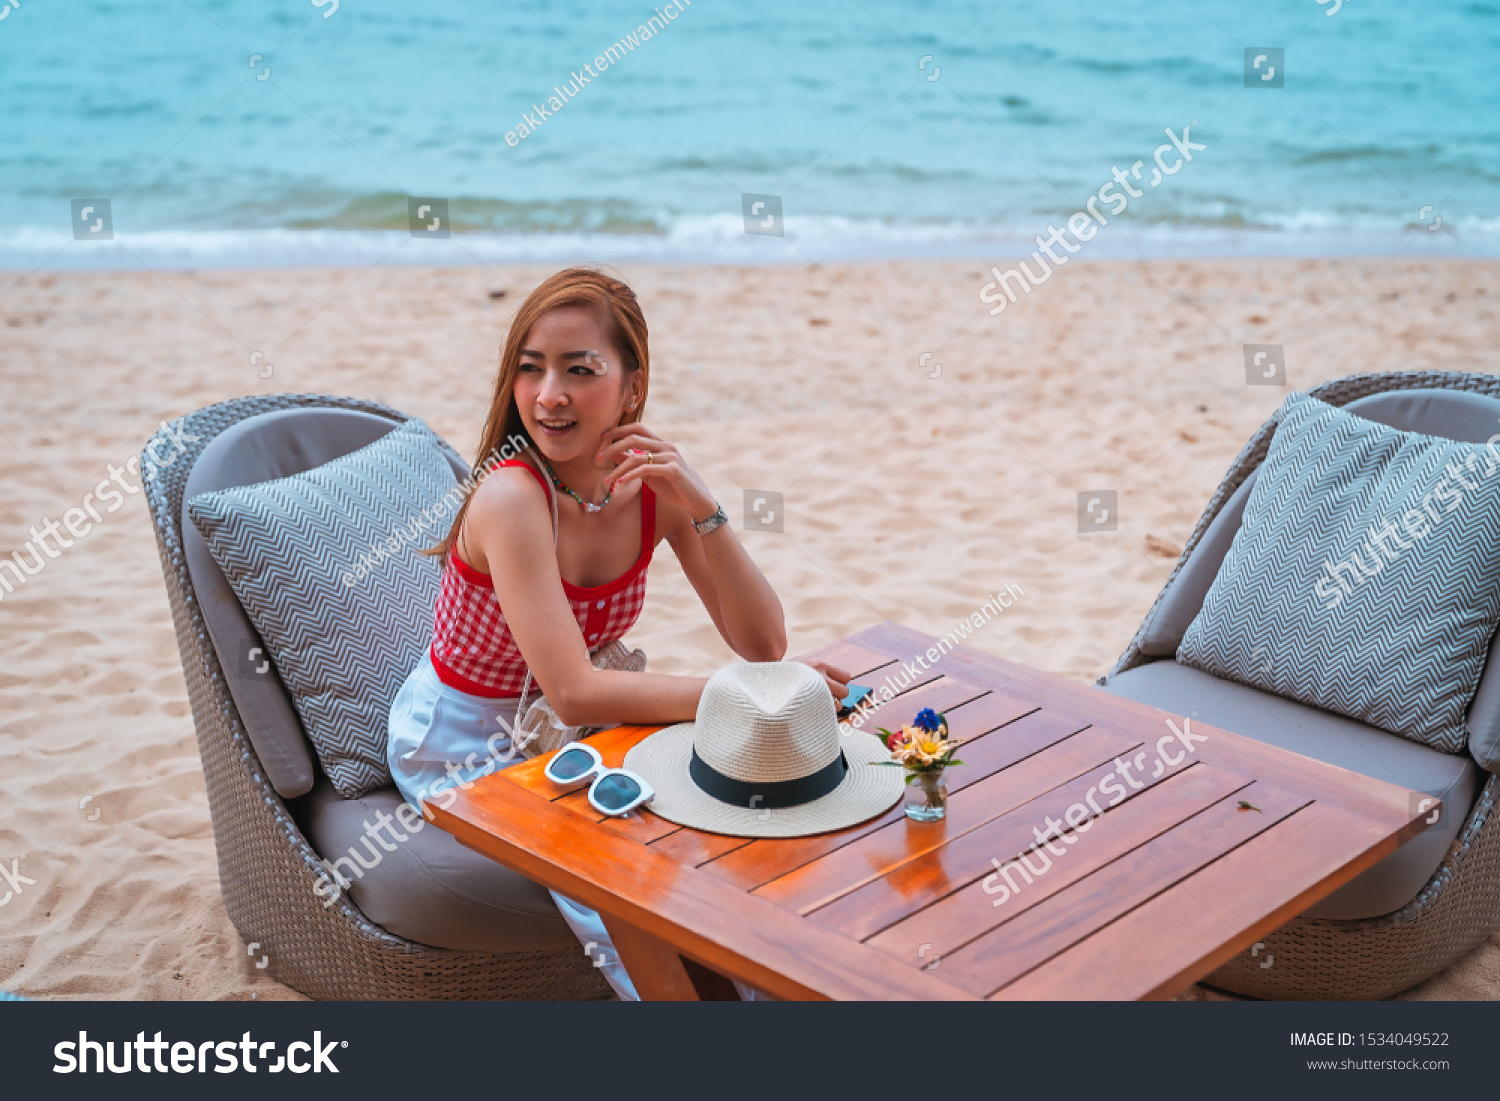 traveler girl in red dress sit on the chair in beach with vacation trip in emotional relax and smile for relax concept #1534049522